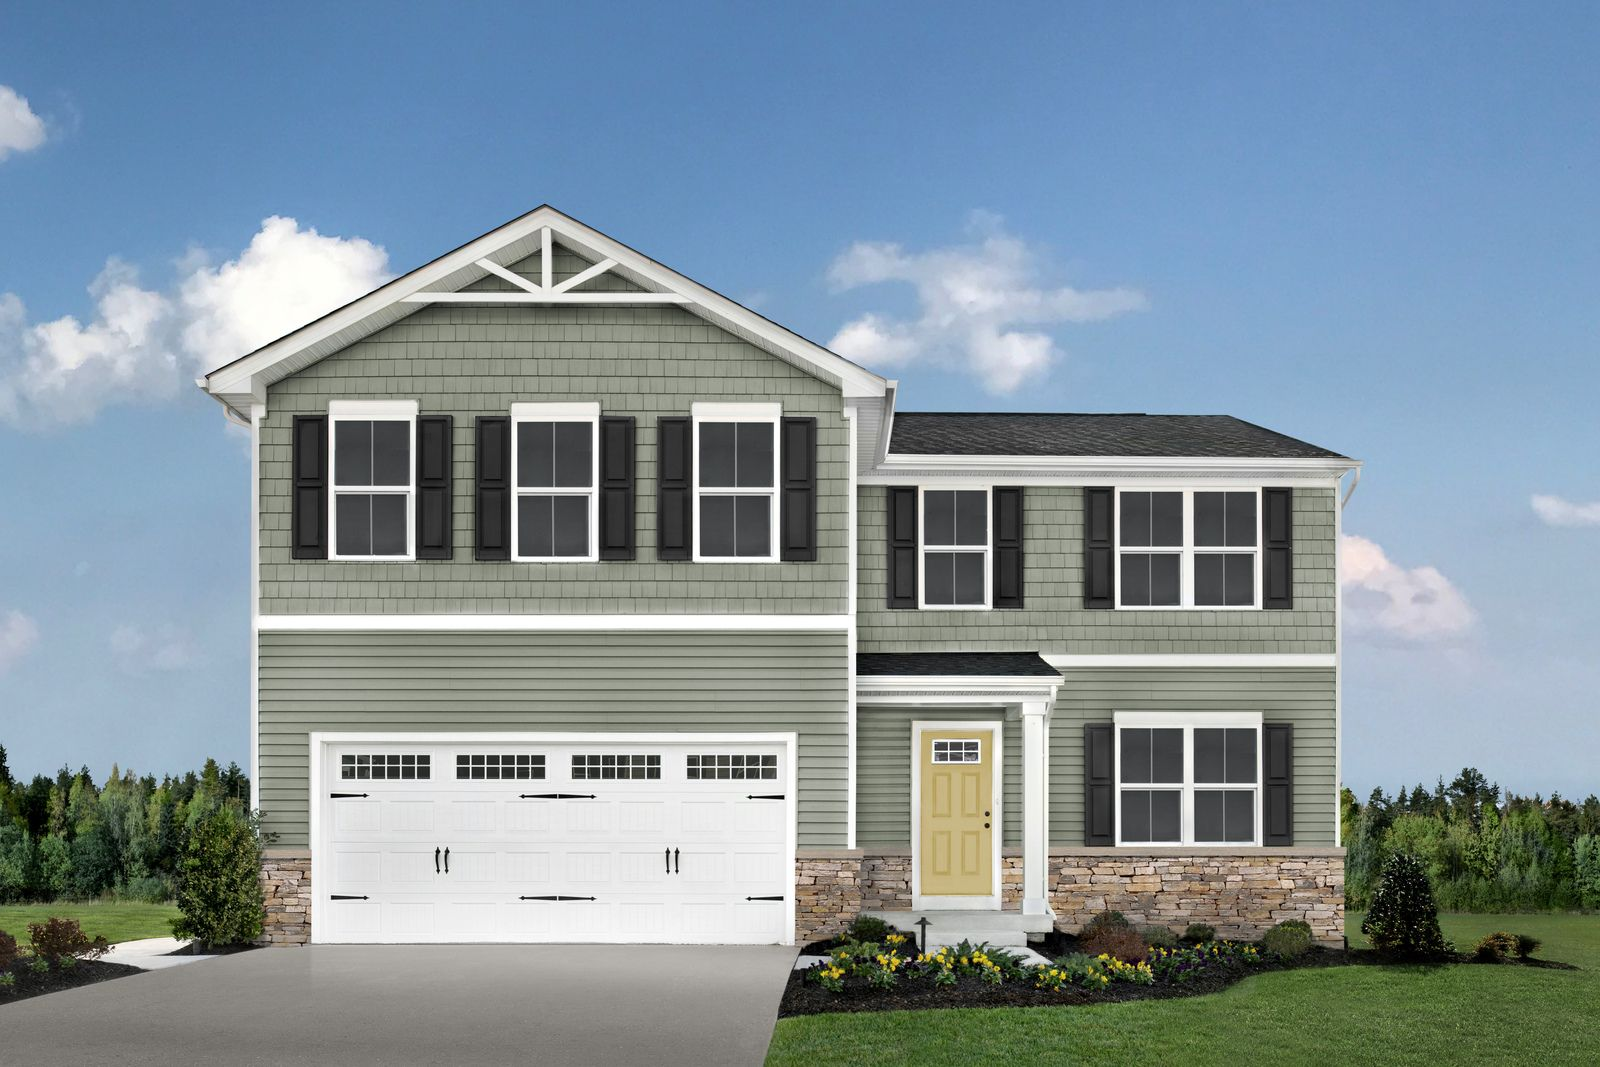 RYAN HOMES AT EVERGREEN – COMING SUMMER 2021 FROM THE LOW $300S:Premier Cane Ridge location only 1.5 miles to I-24 for easy access to downtown Nashville.Join the VIP list for access to community updates & to be the first to purchase your new home!